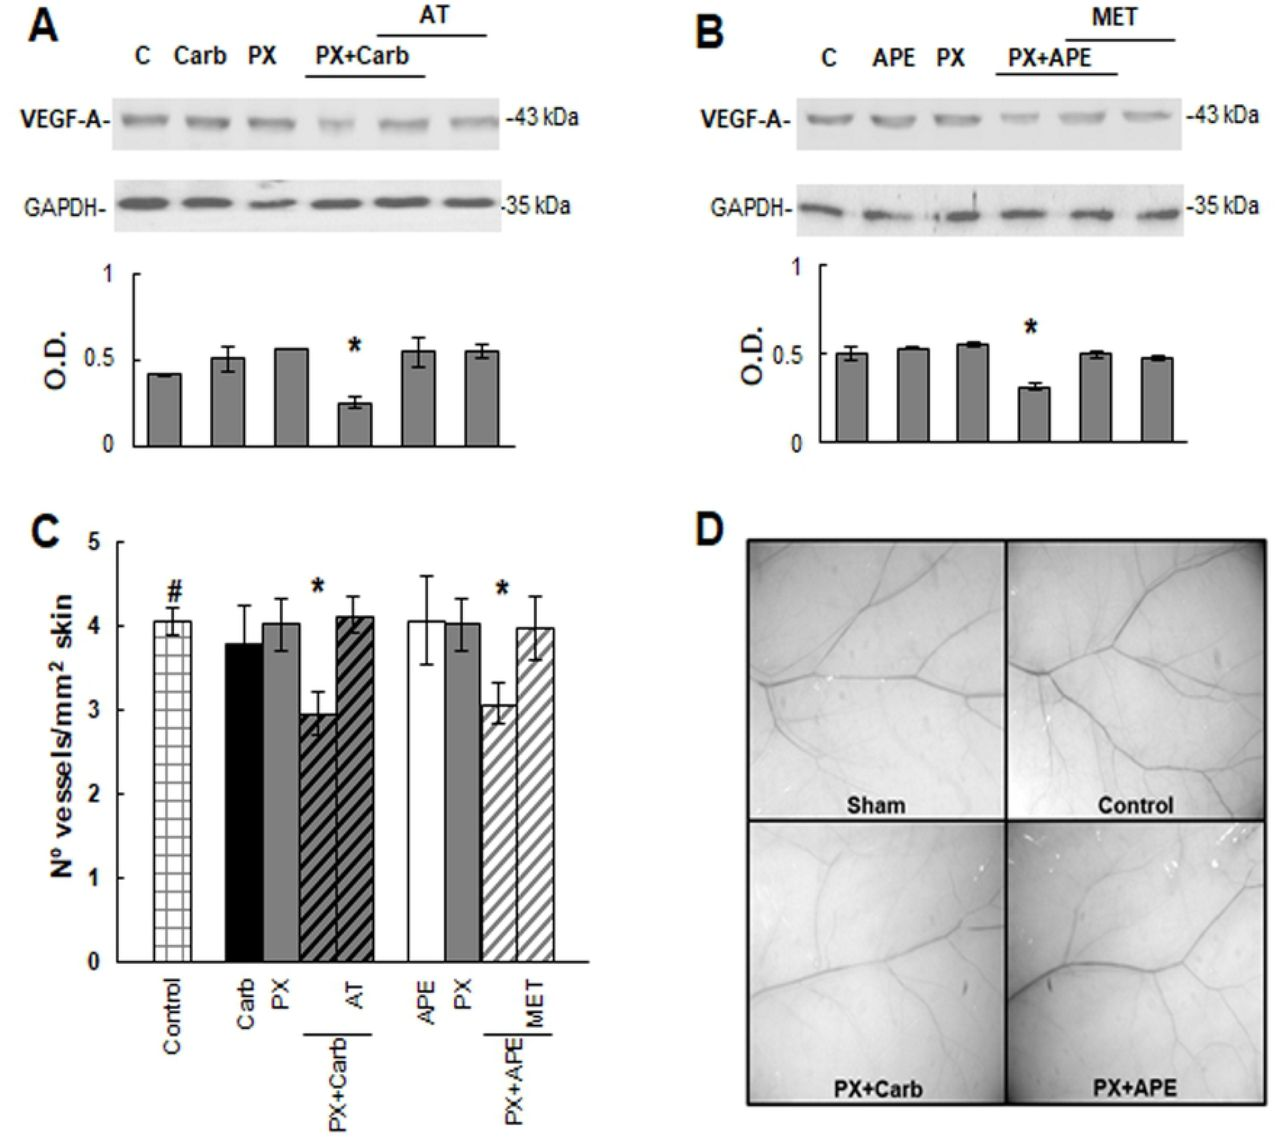 Tumor induced angiogenesis. To analyze the expression of vascular endothelial growth factor-A (VEGF-A) by Western blot, MDA-MB231 cells were treated with A) paclitaxel (PX) (10 −8 M) combined with carbachol (Carb) (8.6×10 −12 M) or B) with arecaidine propargyl ester (APE) (1.1×10 −5 M) in the absence or presence of atropine (AT) (10 −9 M) or methoctramine (MET) (10 −5 M) respectively. Molecular weights are indicated on the right. Densitometric analysis of the bands was expressed as optical density (O.D.) units relative to the expression of glyceraldehyde 3-phosphate dehydrogenase (GAPDH) protein used as loading control. One representative experiment of 3 is shown. C)  In vivo  neovascularization induced by MDA-MB231 cells in NUDE mice skin. Cells were inoculated as it was stated in Methods, and drugs were administered i.p. Values are mean ± S.E.M. of 3 experiments performed with 3 animals per group inoculated in both flanks. D) Representative photographs of mice skin from sham animals or inoculated with tumor cells (Control) without treatment or treated with PX+Carb or PX+APE. Magnification 6.4X. (#P